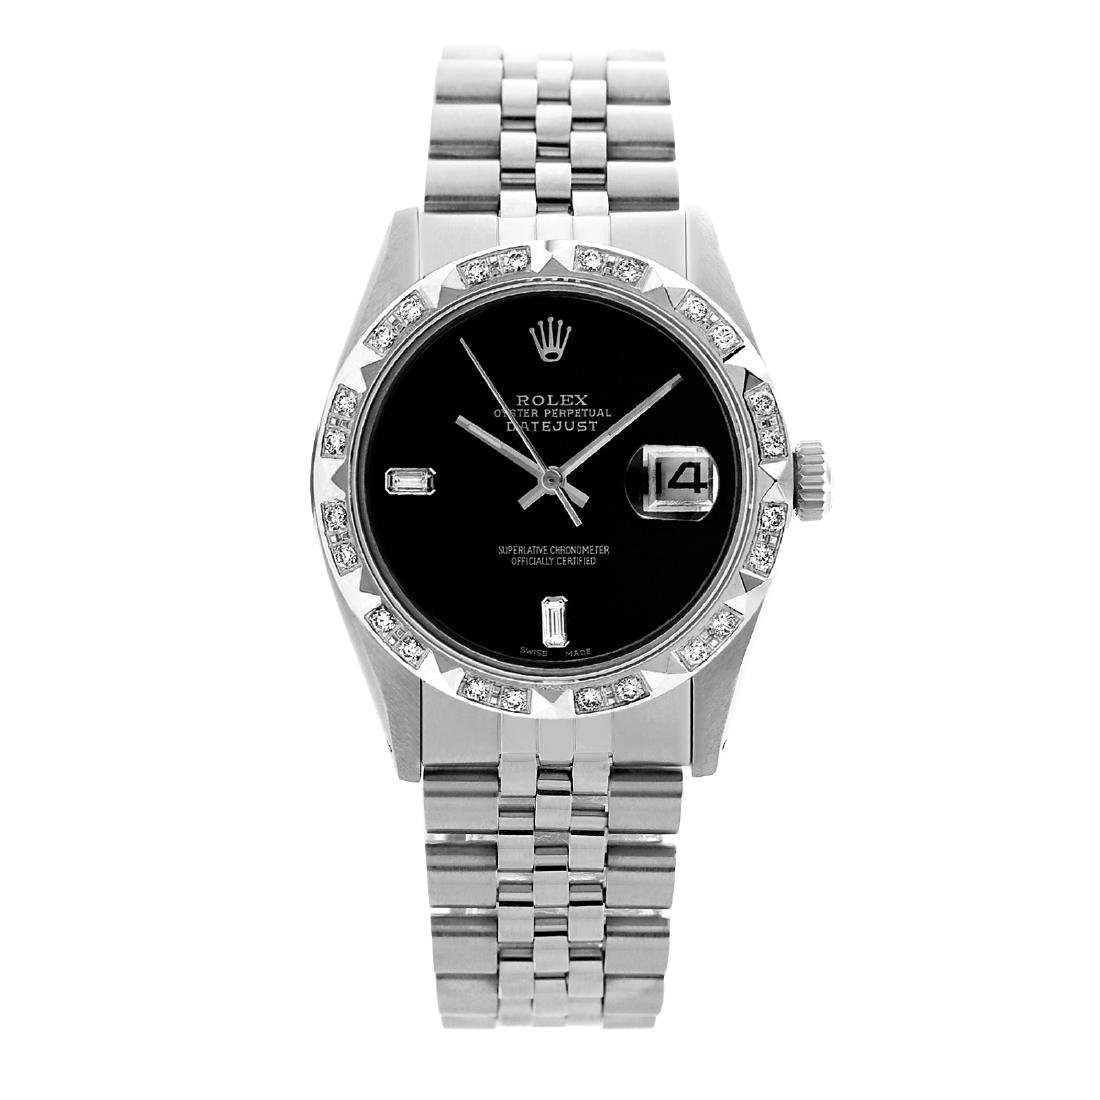 Rolex Men's Stainless Steel, QuickSet, Diam Dial with - 2